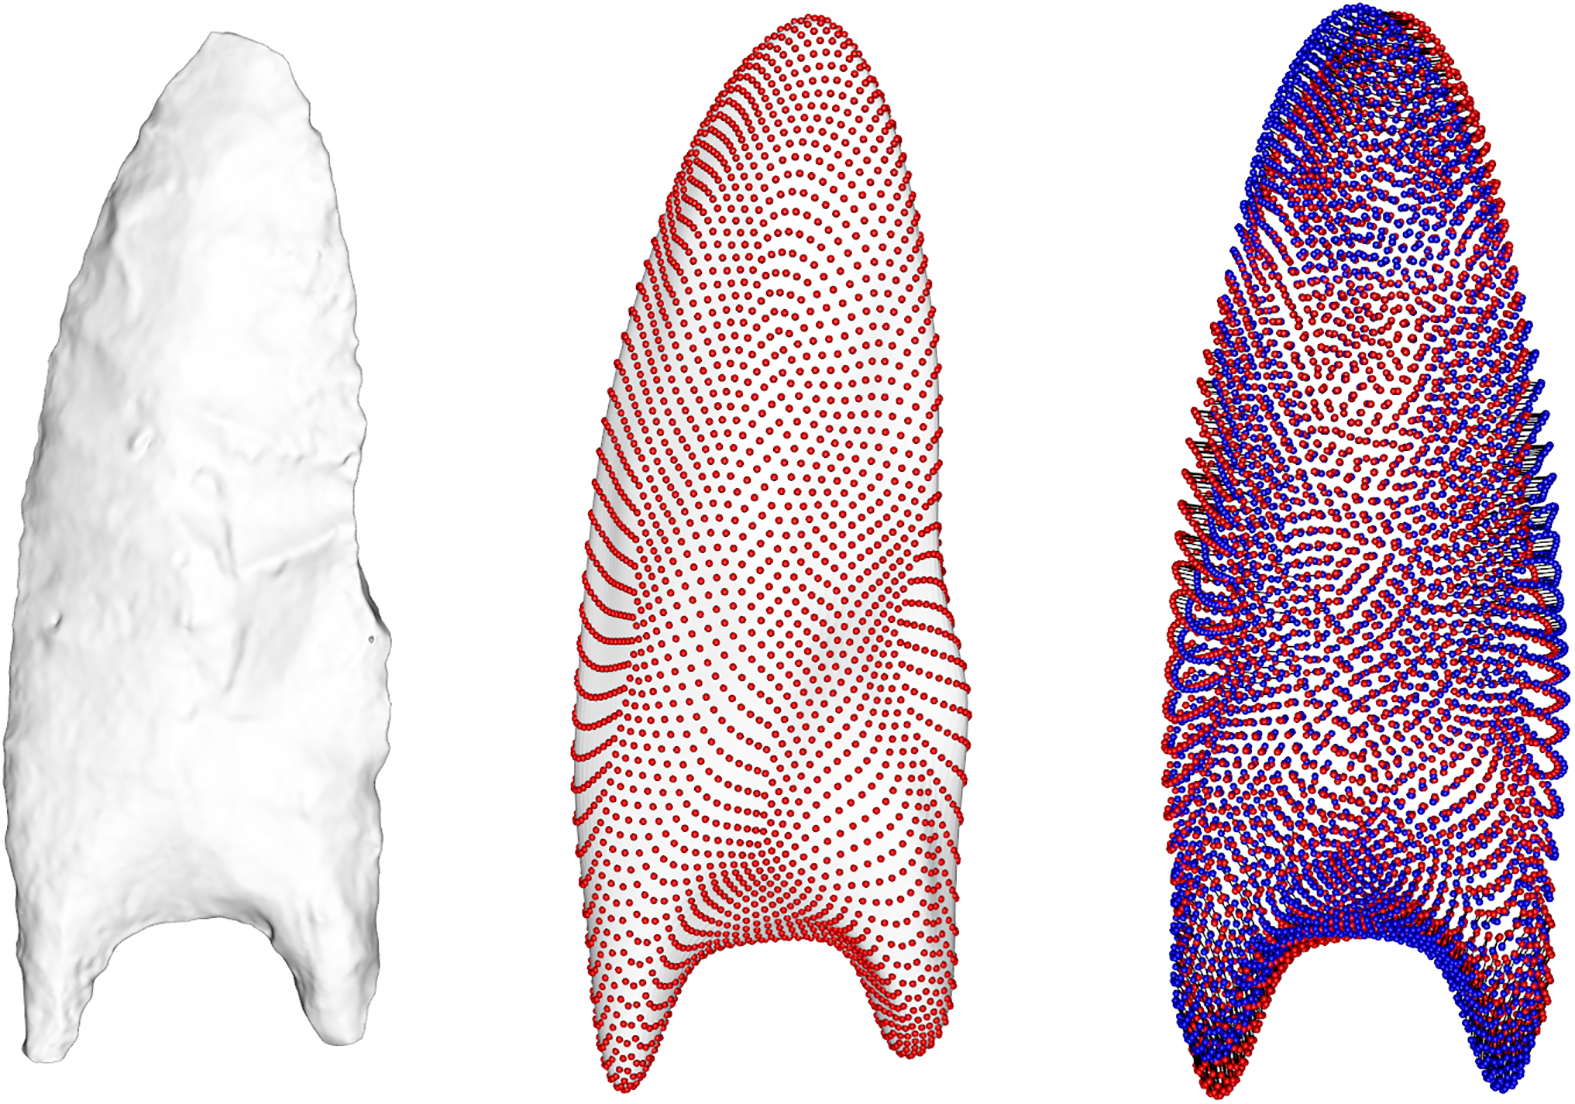 digitized comparison of stone tools